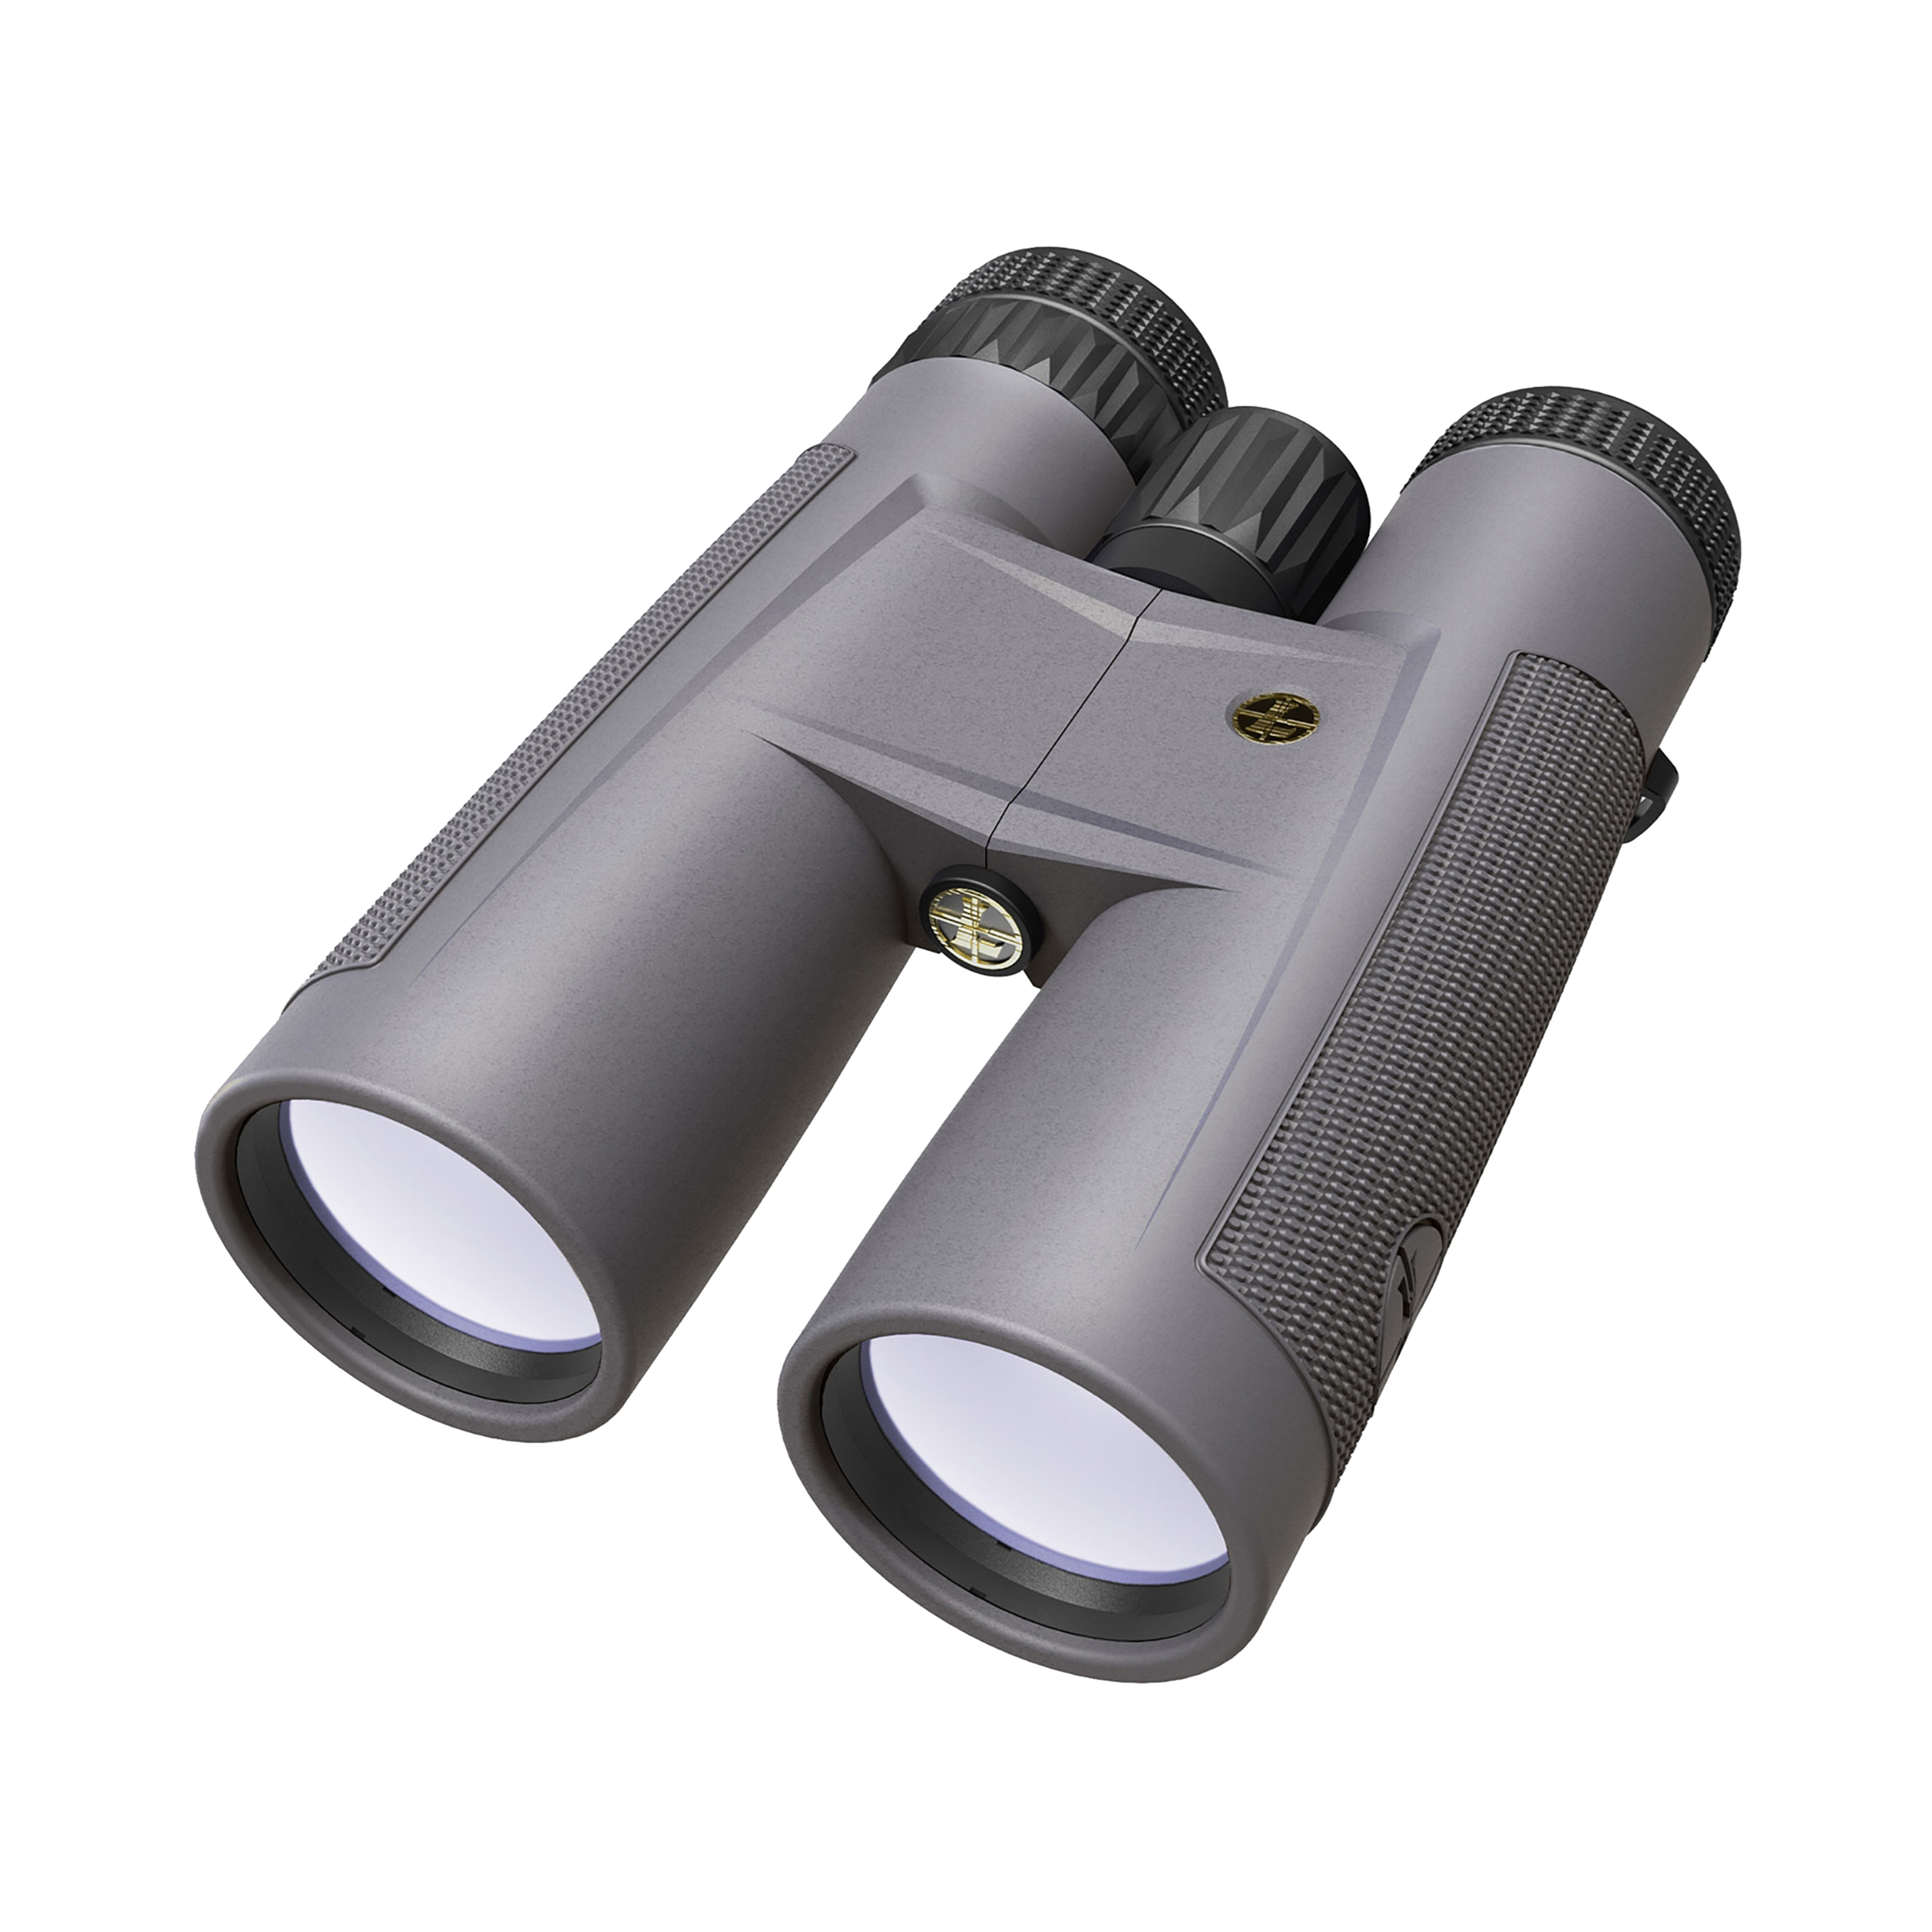 Leupold BX-2 Tioga HD Binocular 10x50mm, Roof Prism, Shadow Gray by Leupold